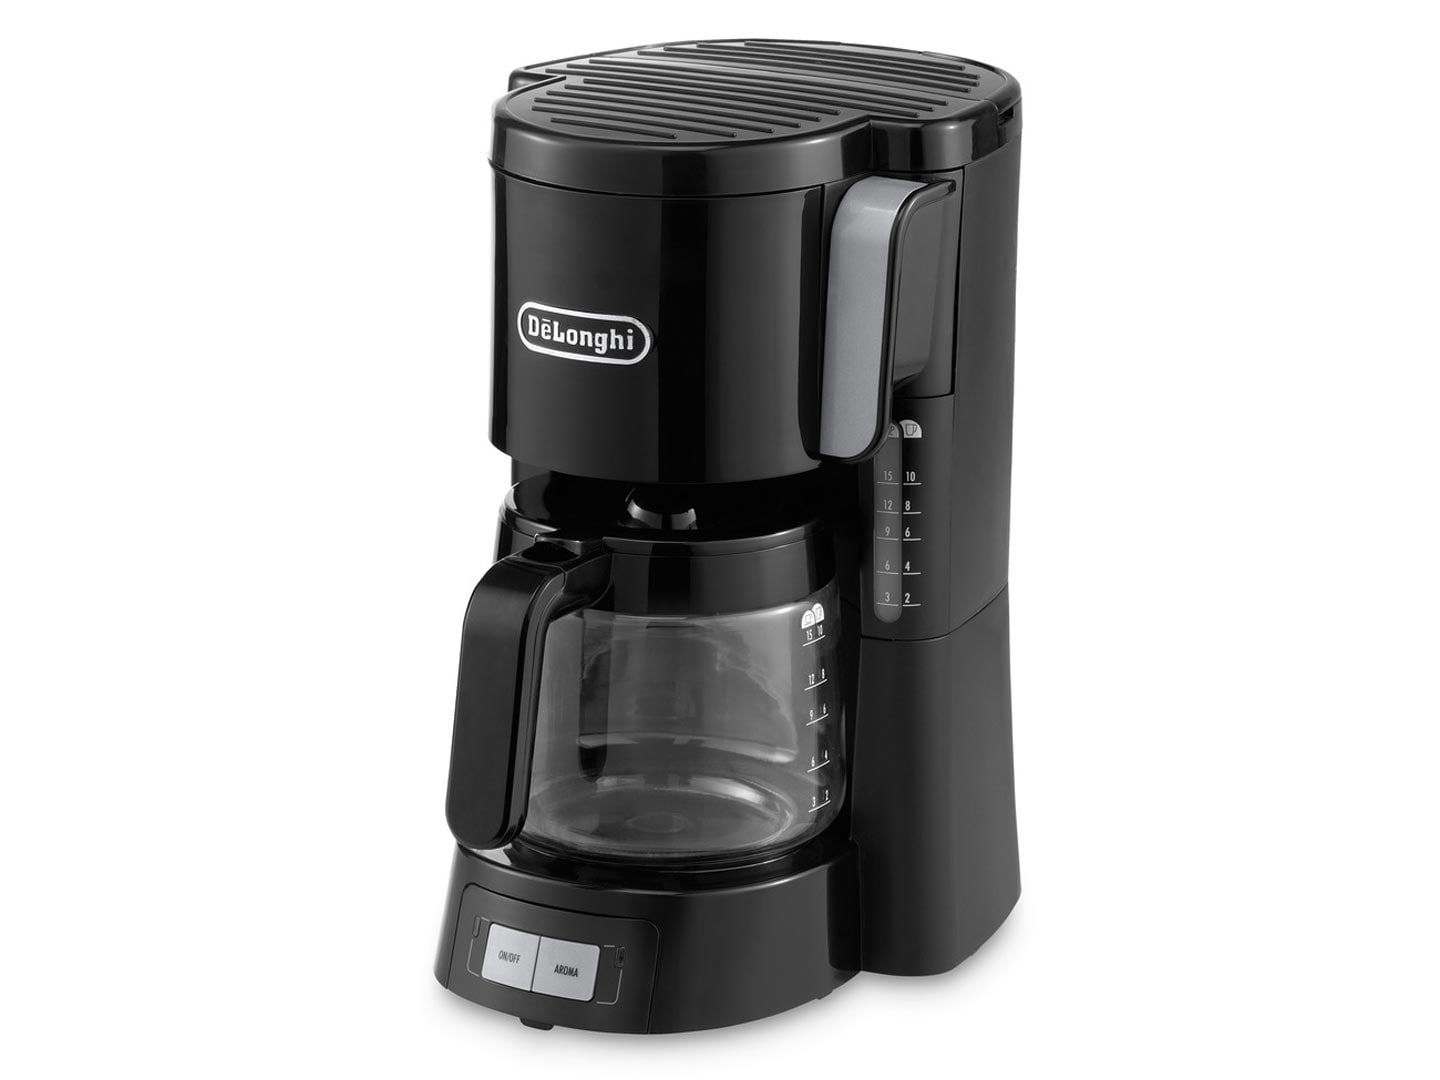 Delonghi Filter Coffee Maker : The De Longhi ICM15240 filter coffee maker features a warming plate, auto shut-off, water level ...